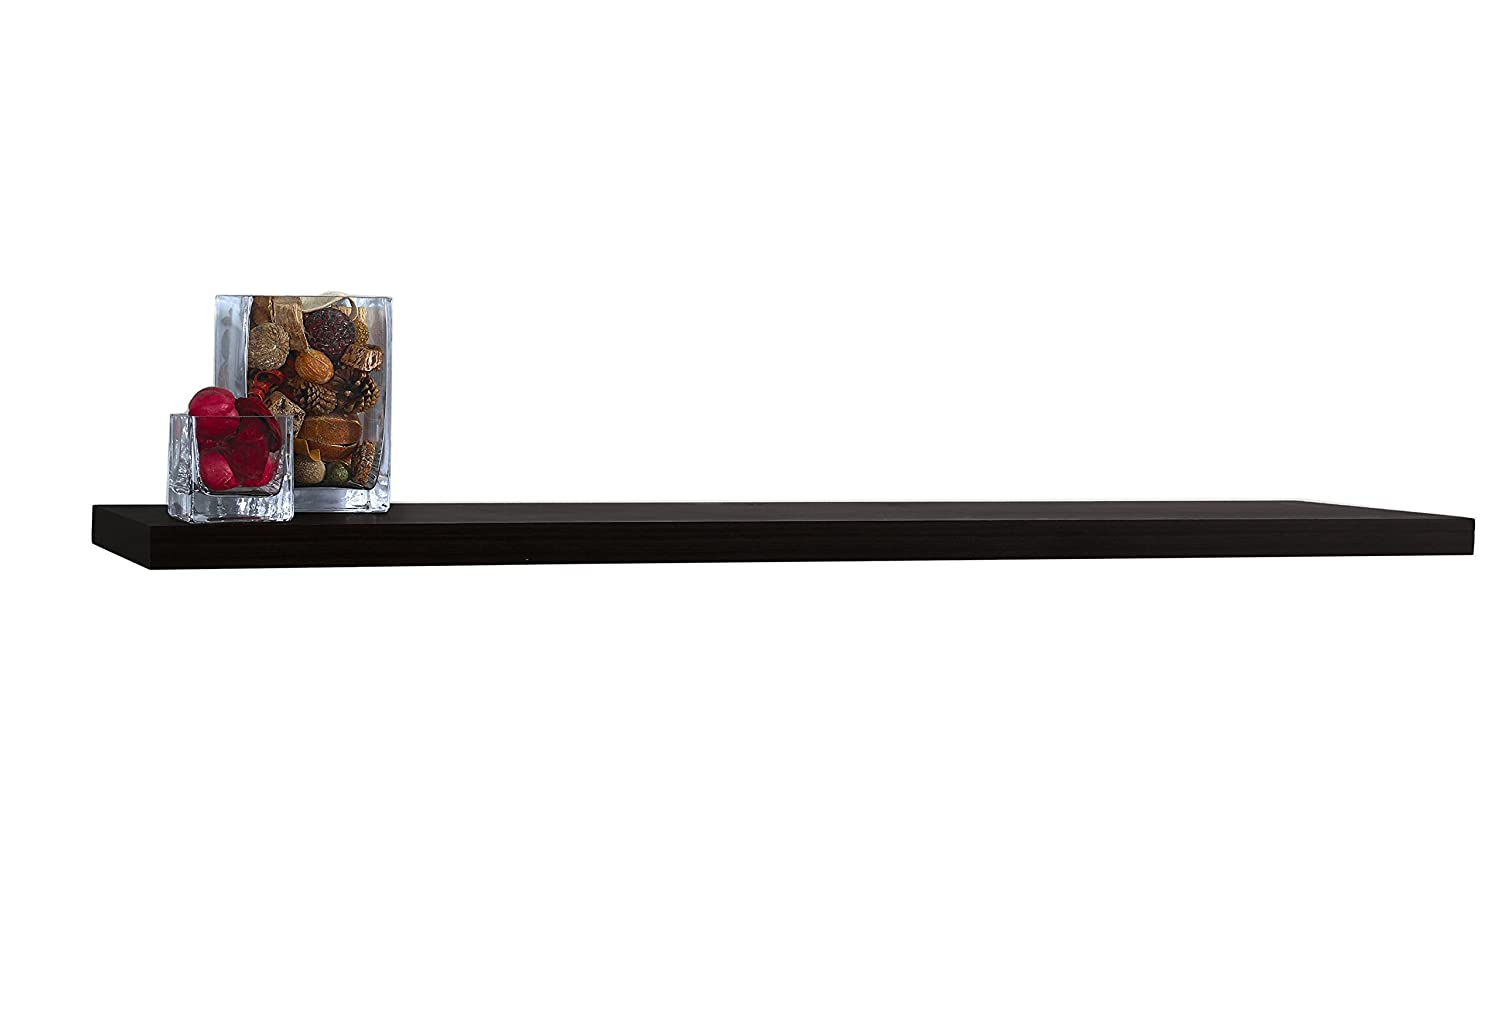 amazon com inplace shelving 9084676 60 in w x 8 in d x 1 25 in h rh amazon com floating wood shelves 60 inch floating shelves 60 inches